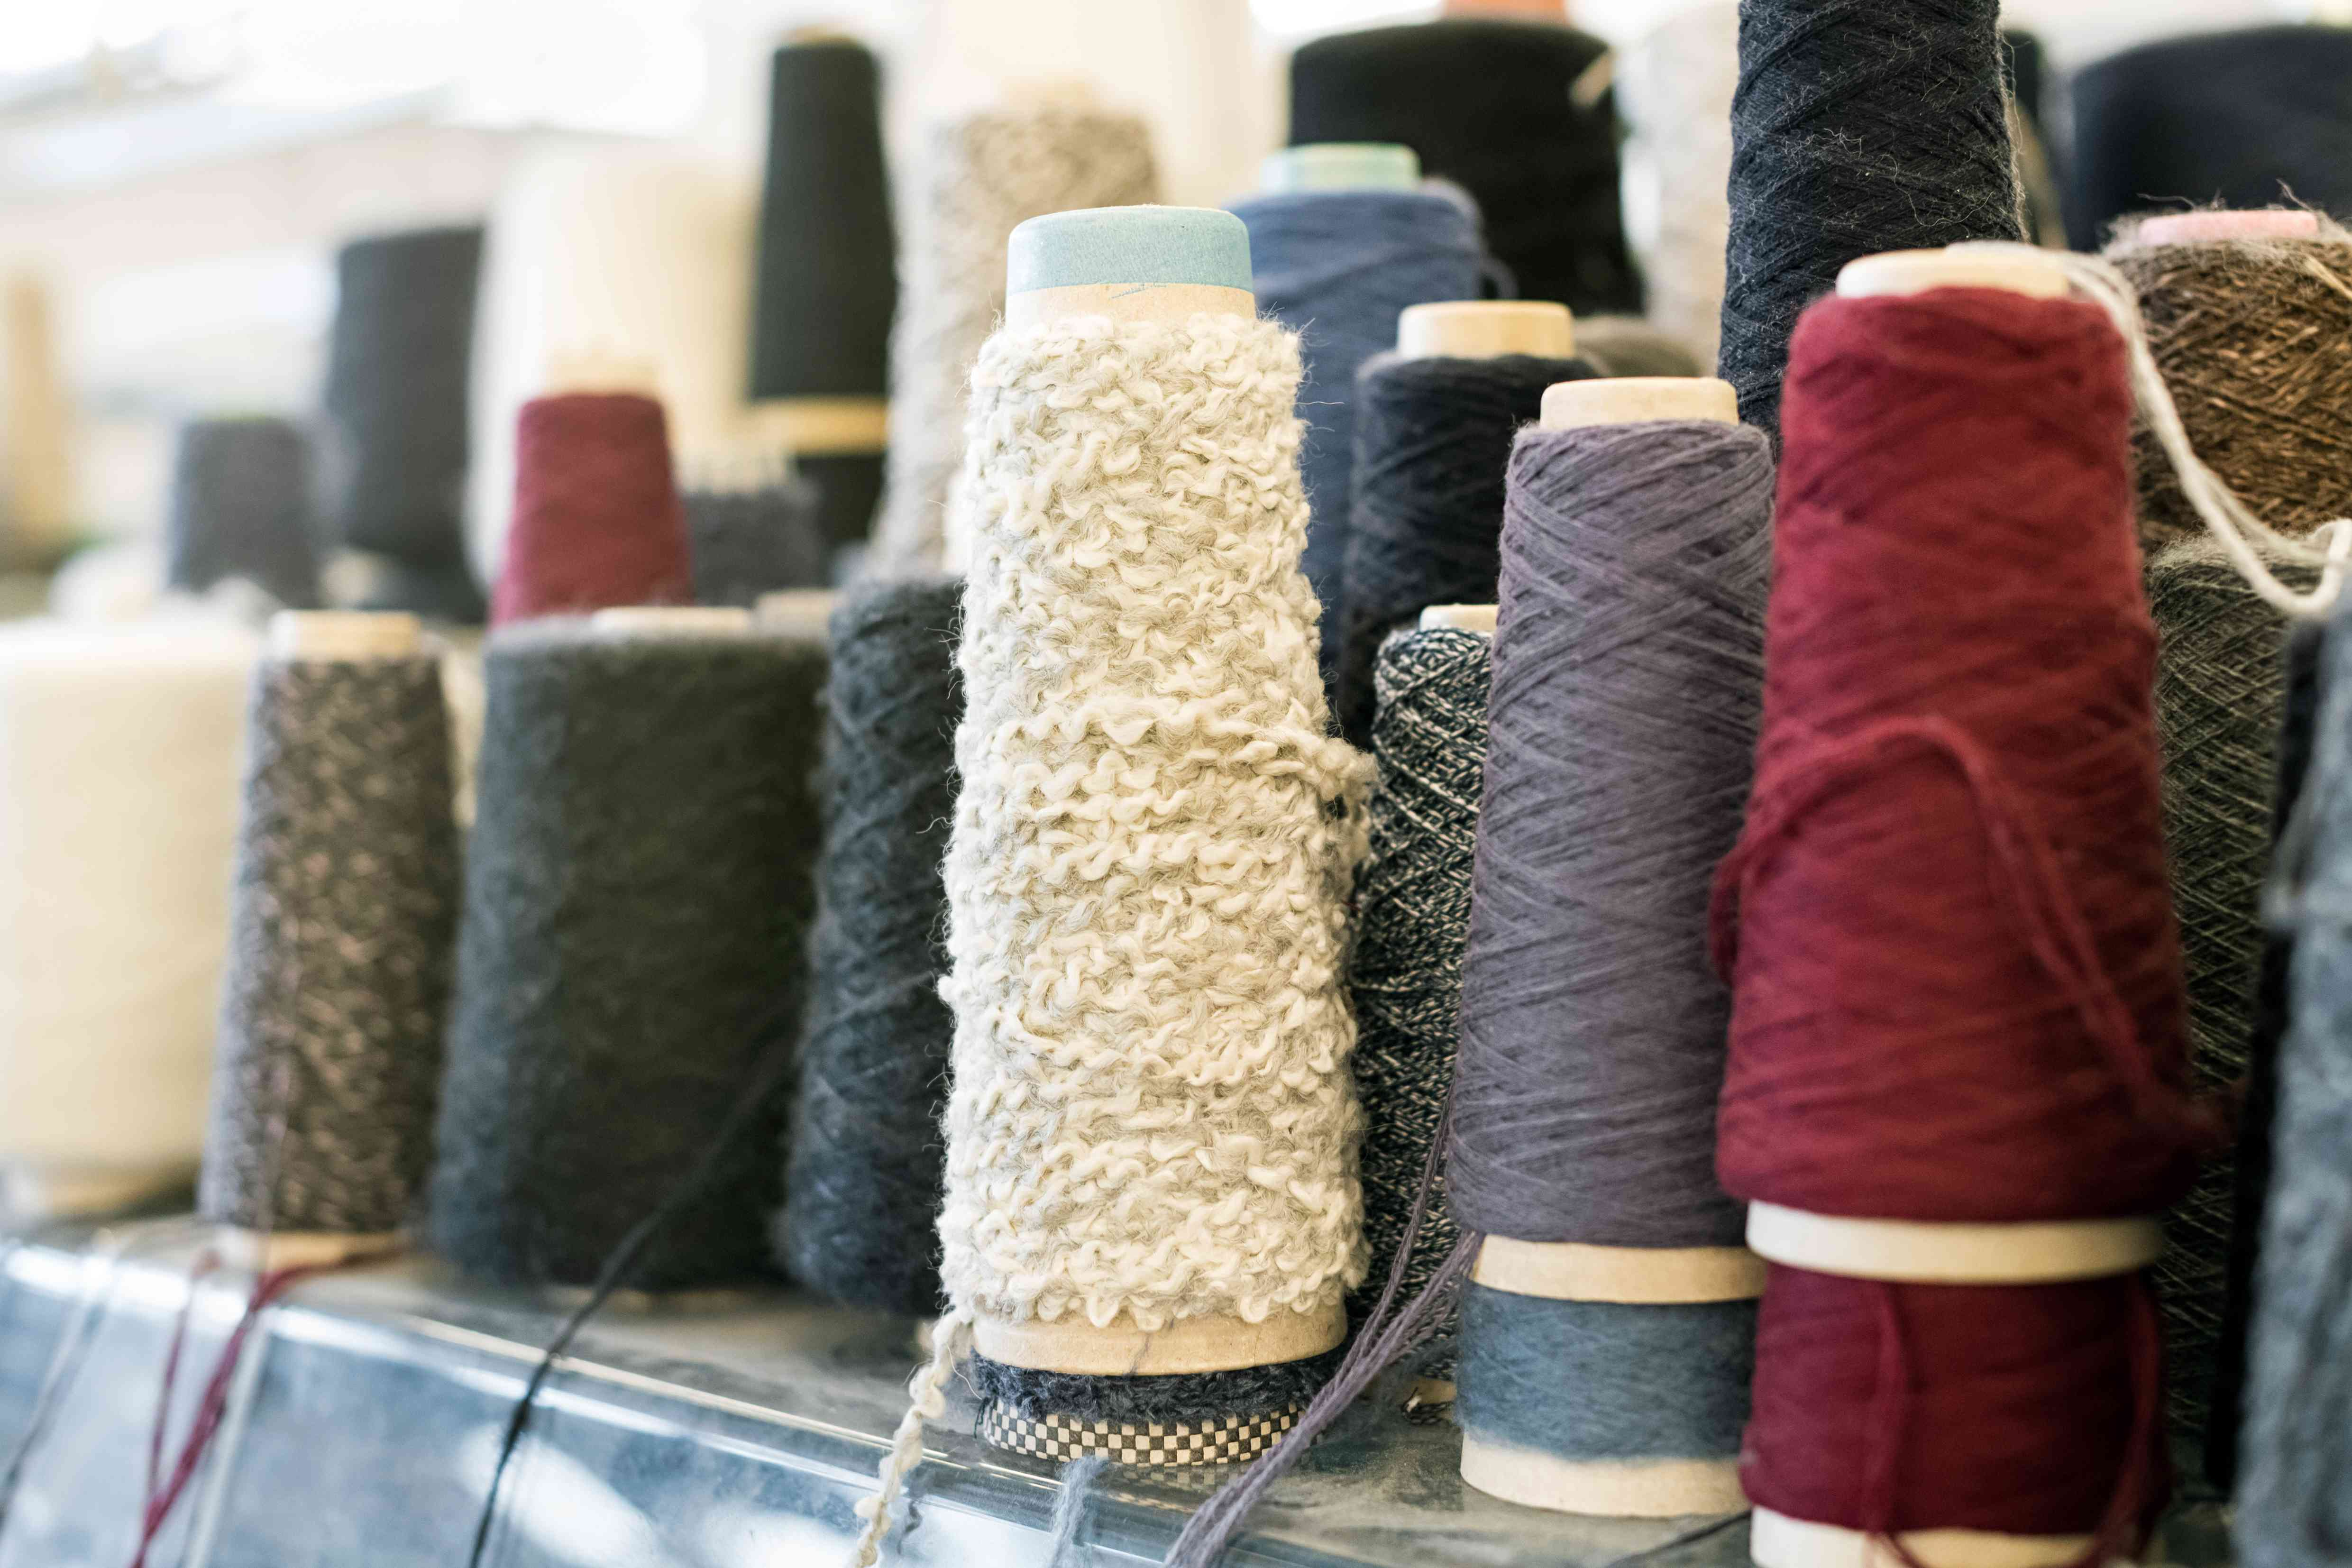 Spools and reels of spun cashmere wool